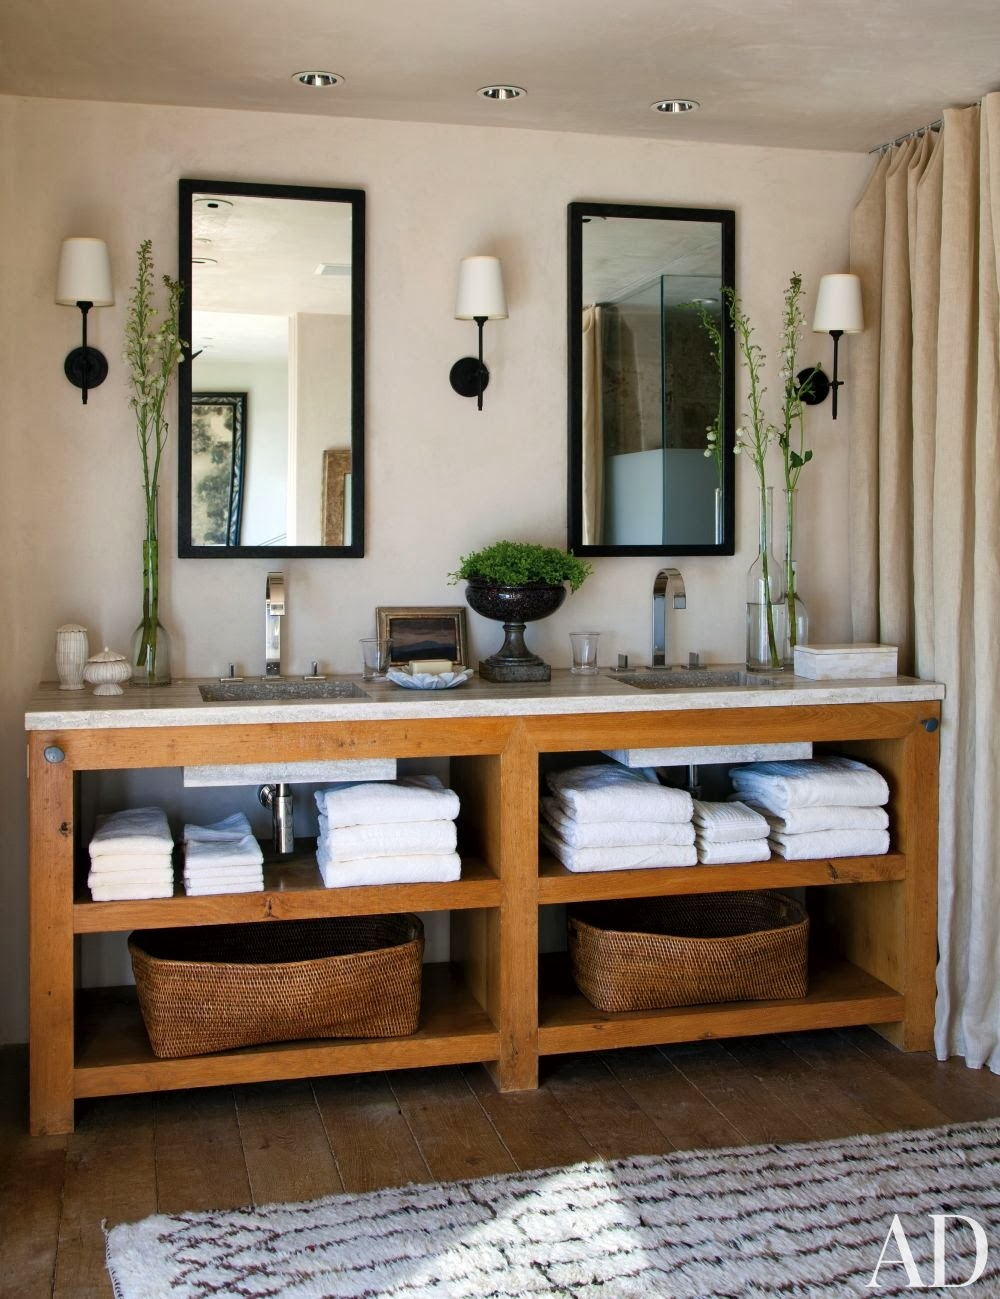 Rustic Modern Bathroom Ideas Of Refresheddesigns Seven Stunning Modern Rustic Bathrooms